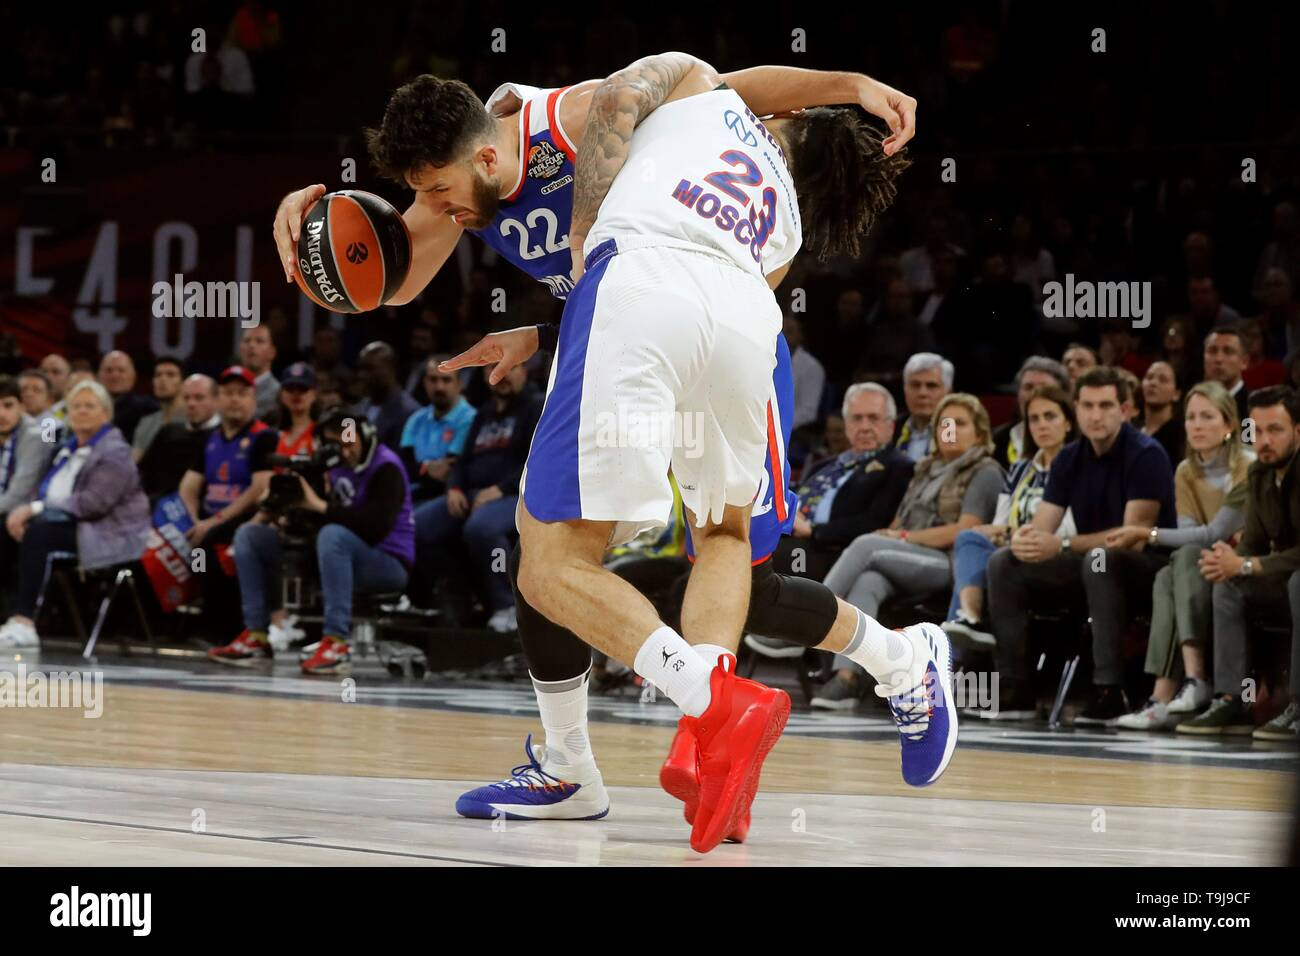 Anadolu Efes' Vasilije Micic (L) in action against CSKA Moscow's Daniel Hackett (R) during the Euroleague Final Four final match at the Buesa Arena in Vitoria, northern Spain, 19 May 2019. EFE/ Juan Carlos Hidalgo - Stock Image